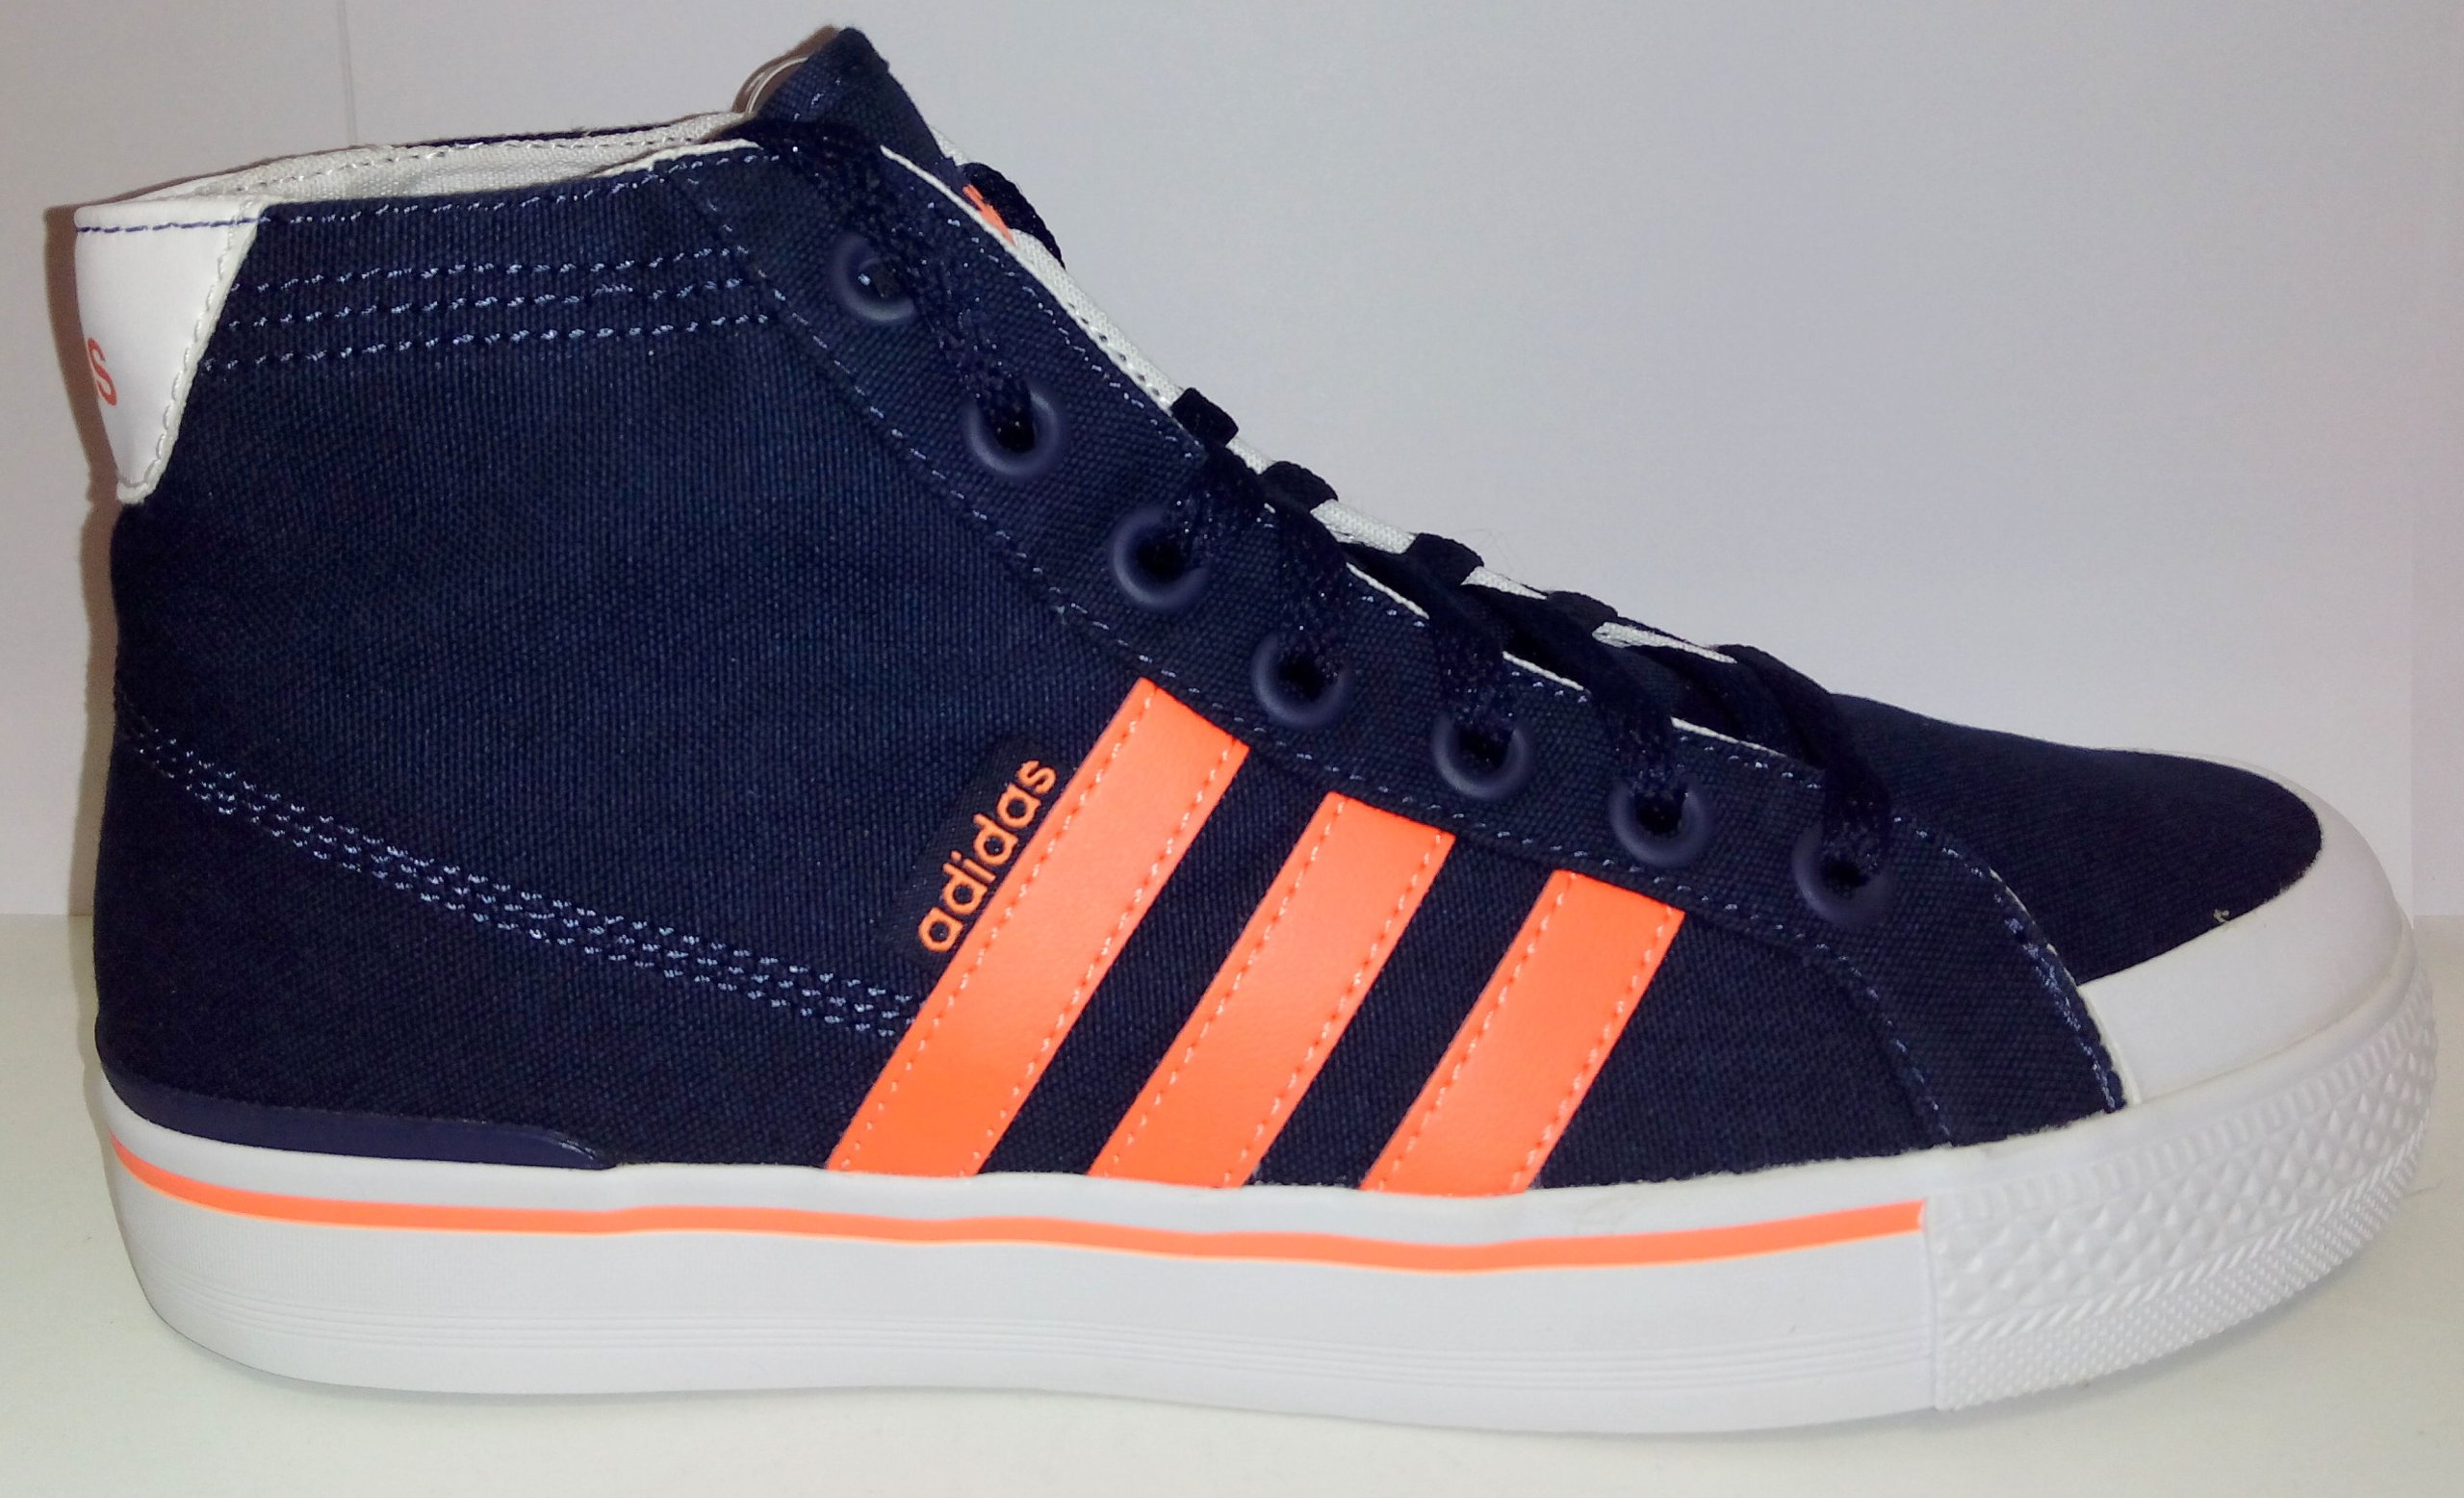 detailed look 7a00b 7bab8 BUTY TRAMPKI ADIDAS CLEMENTES MID F99500 r. 40 23 6736782891 - Allegro.pl